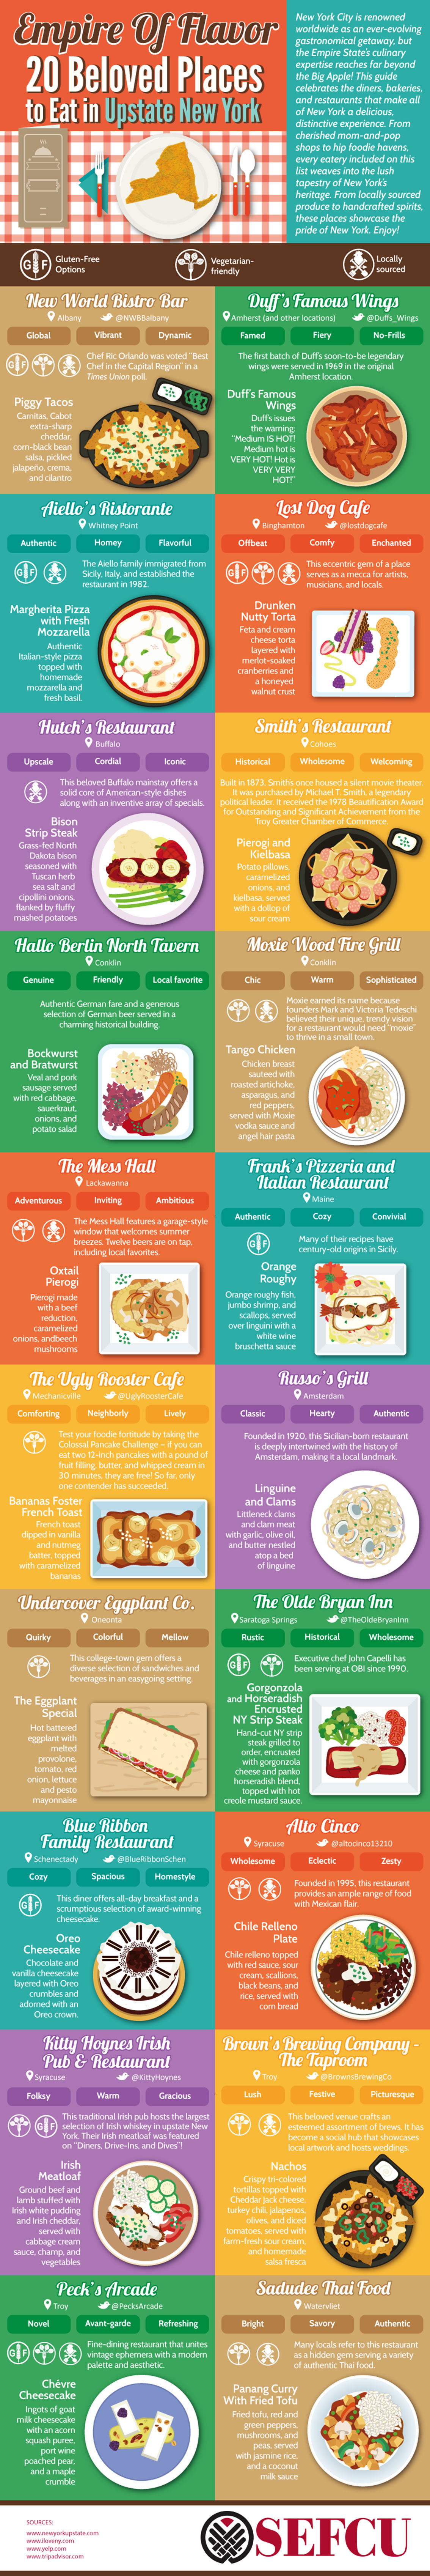 Best Restaurants To Eat in Upstate New York - Dining Infographic